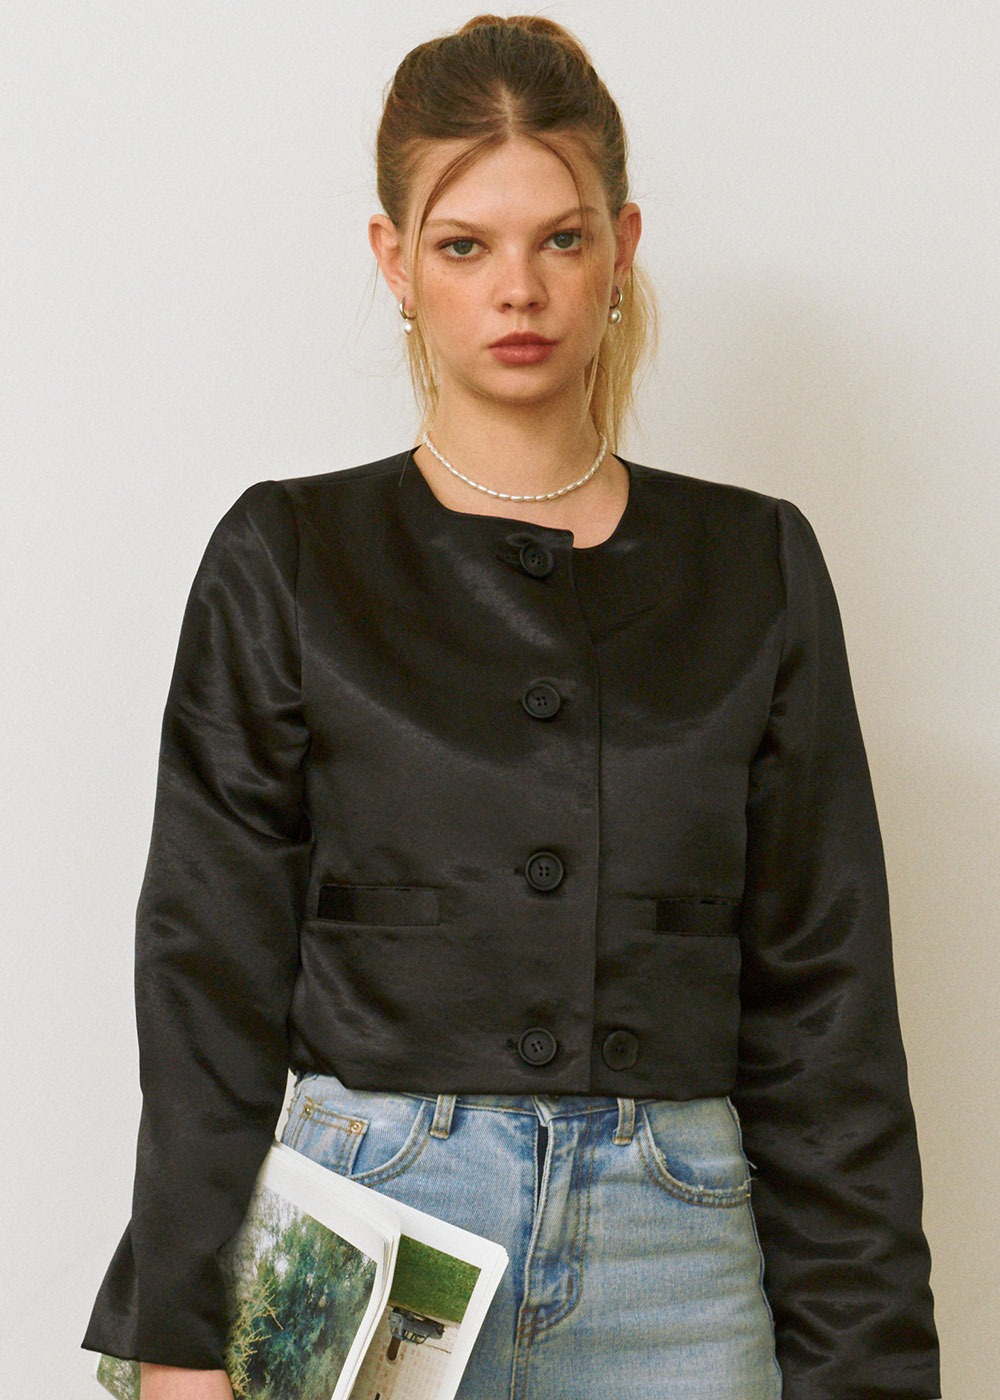 Non-Collar Crop Jacket [BLACK]Non-Collar Crop Jacket [BLACK]자체브랜드